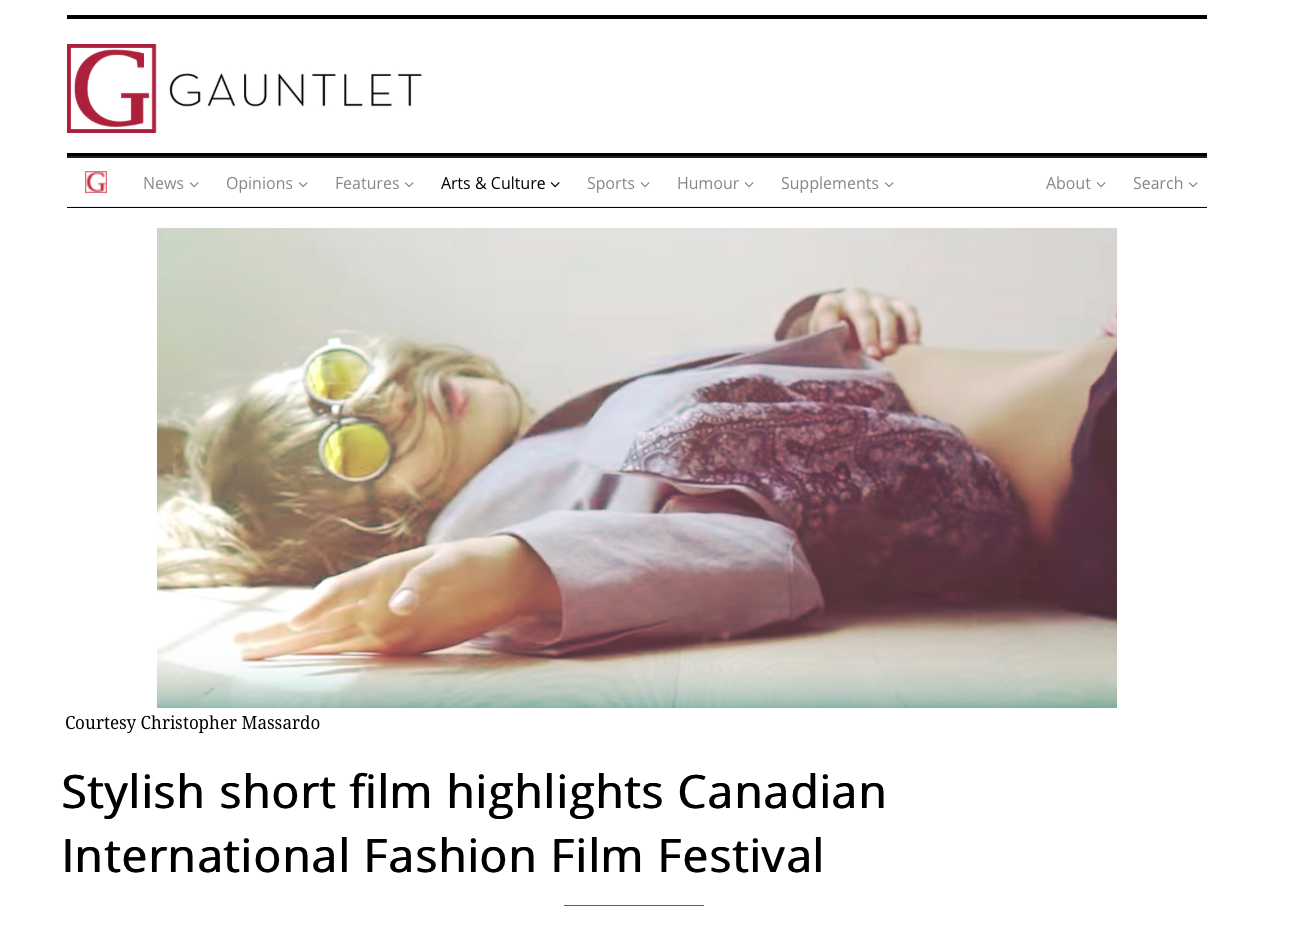 The Gauntlet - The Gauntlet reviews Christopher Massardo's award nominated short fashion film.